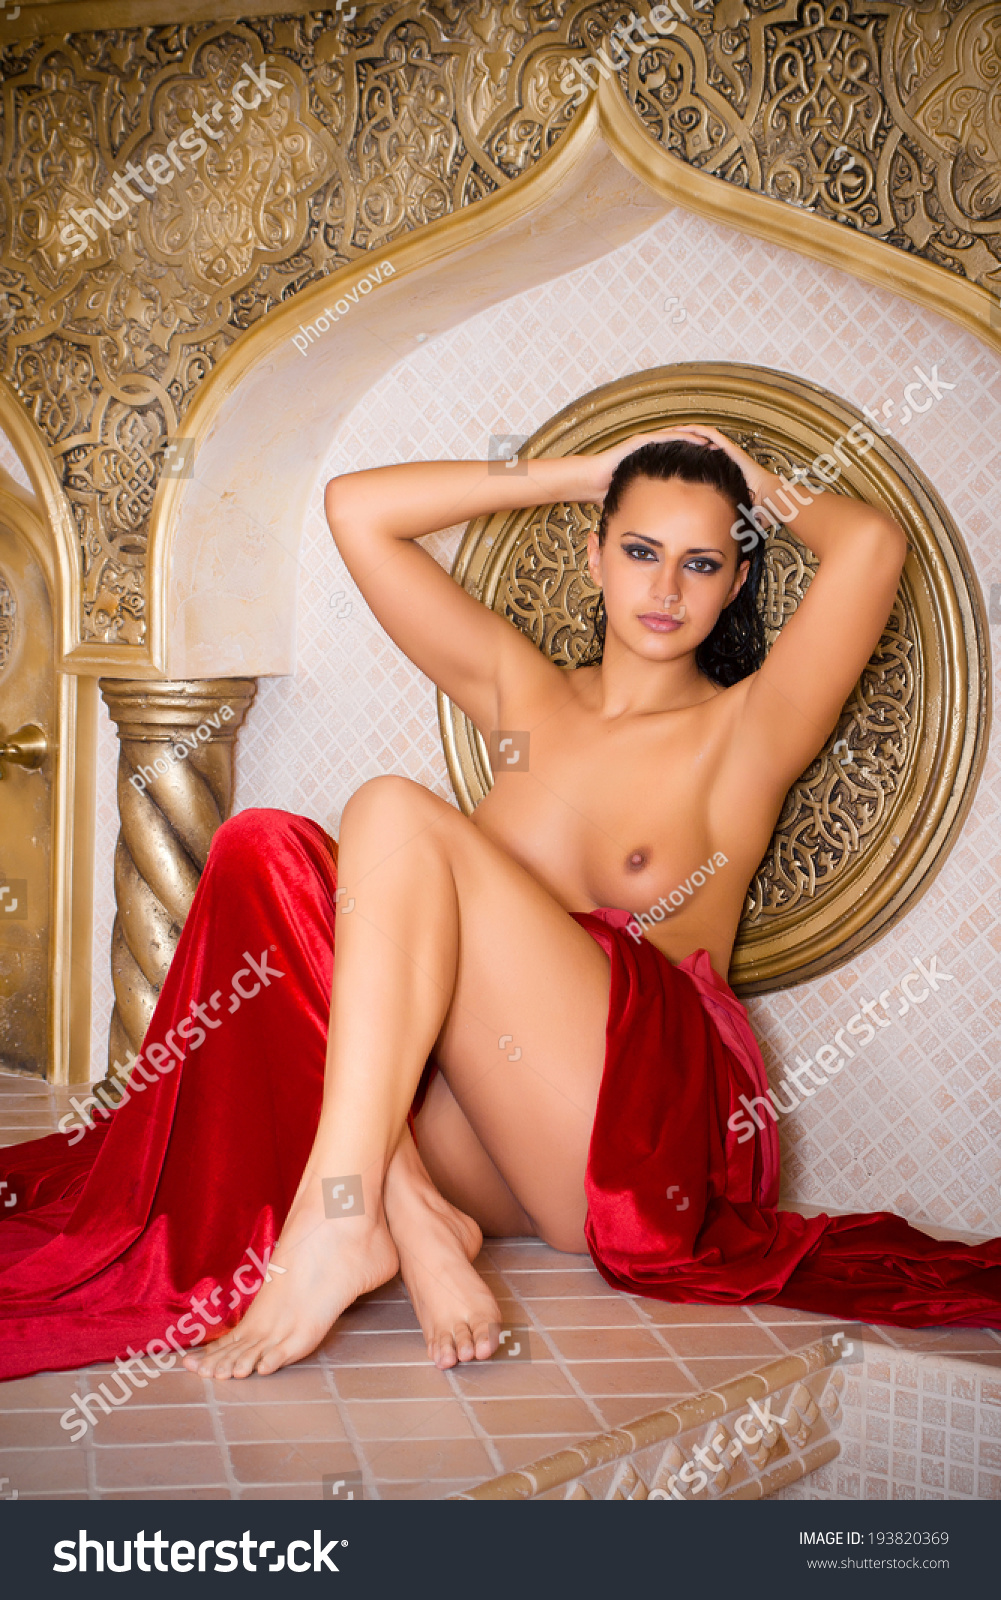 Turkish Bath Nude Women 34